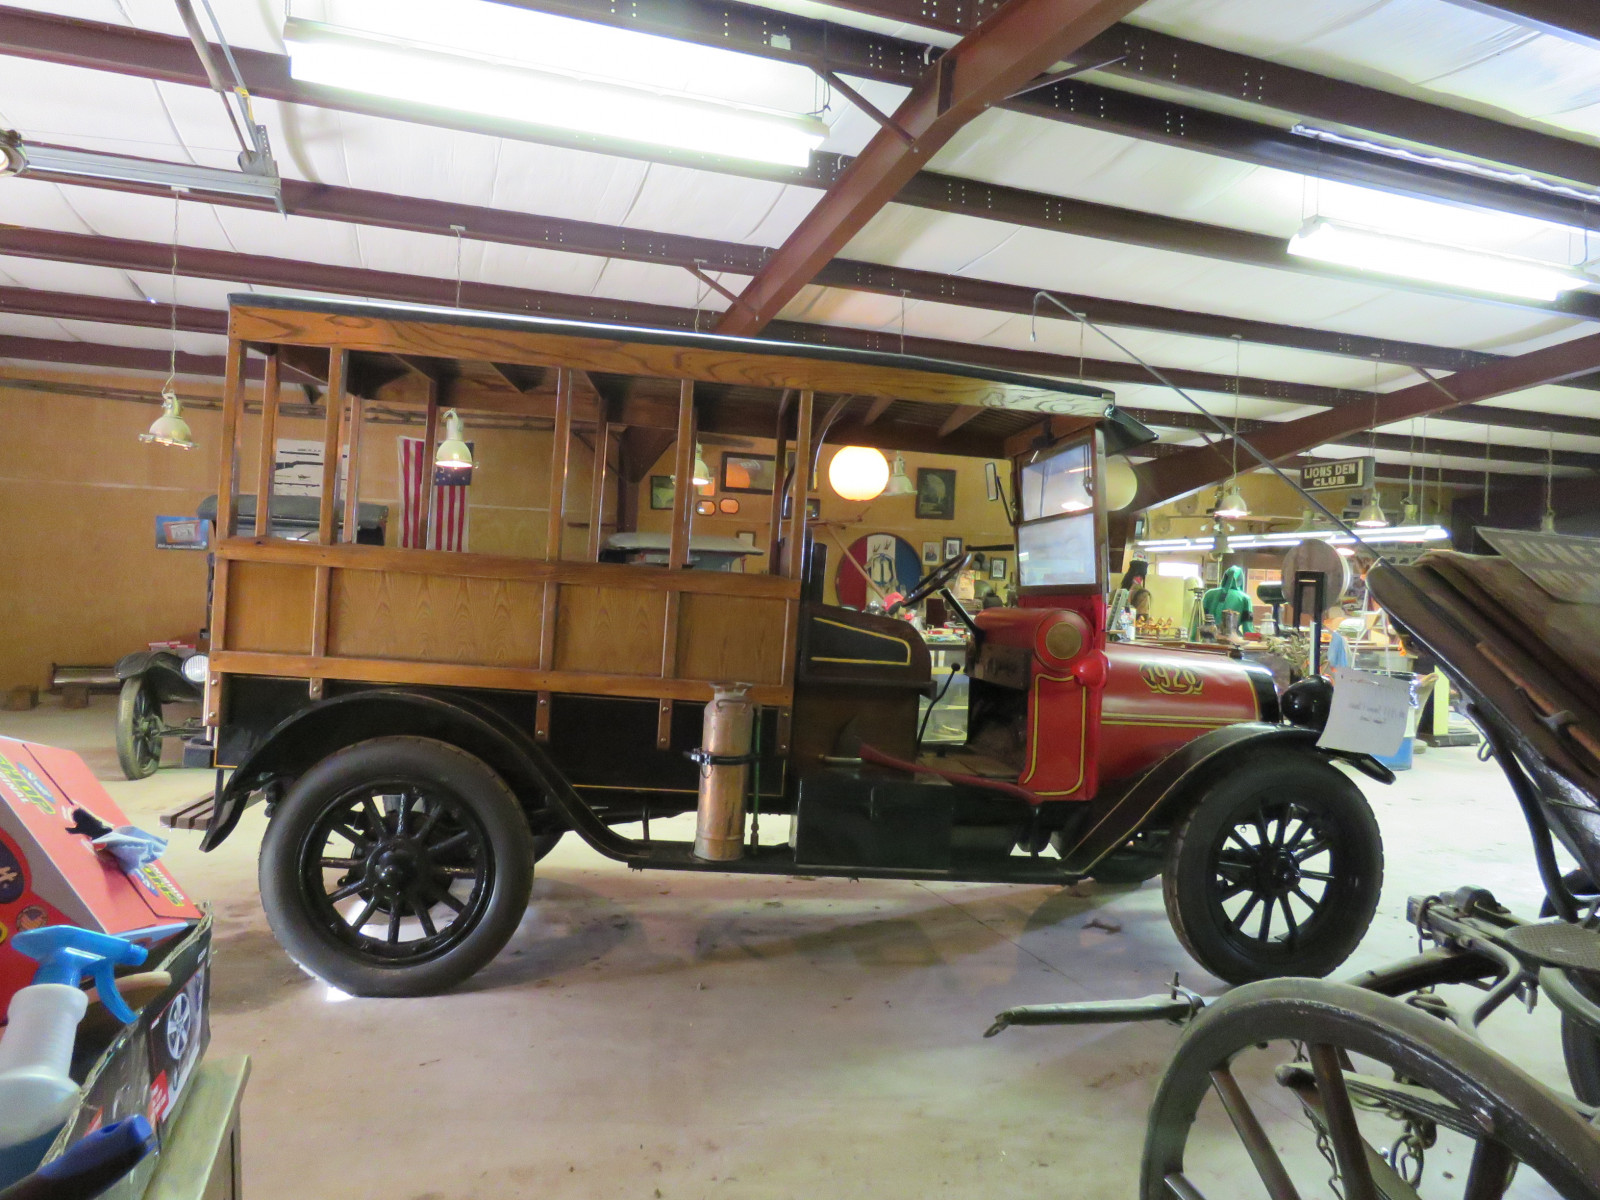 Rare 1920 REO Speedwagon Canopy Express Truck - Image 9